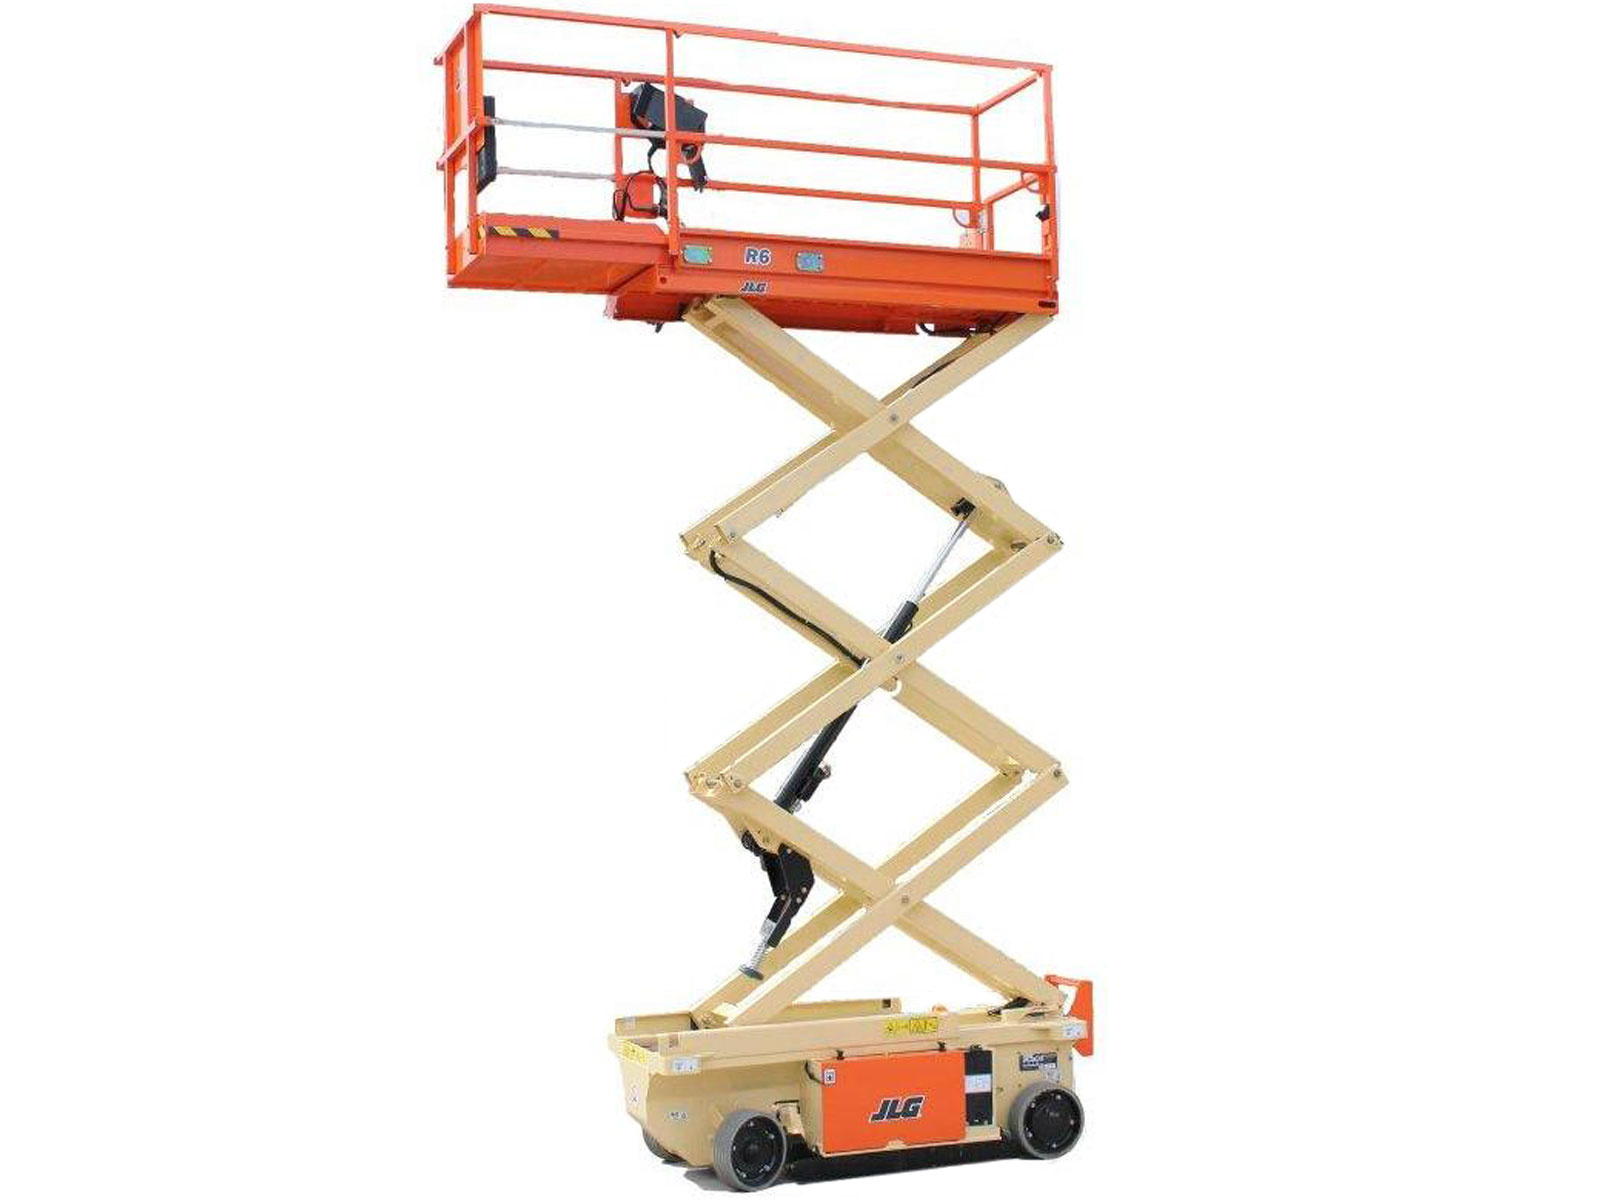 JLG 19' Scissor Lift $150/day $300/week